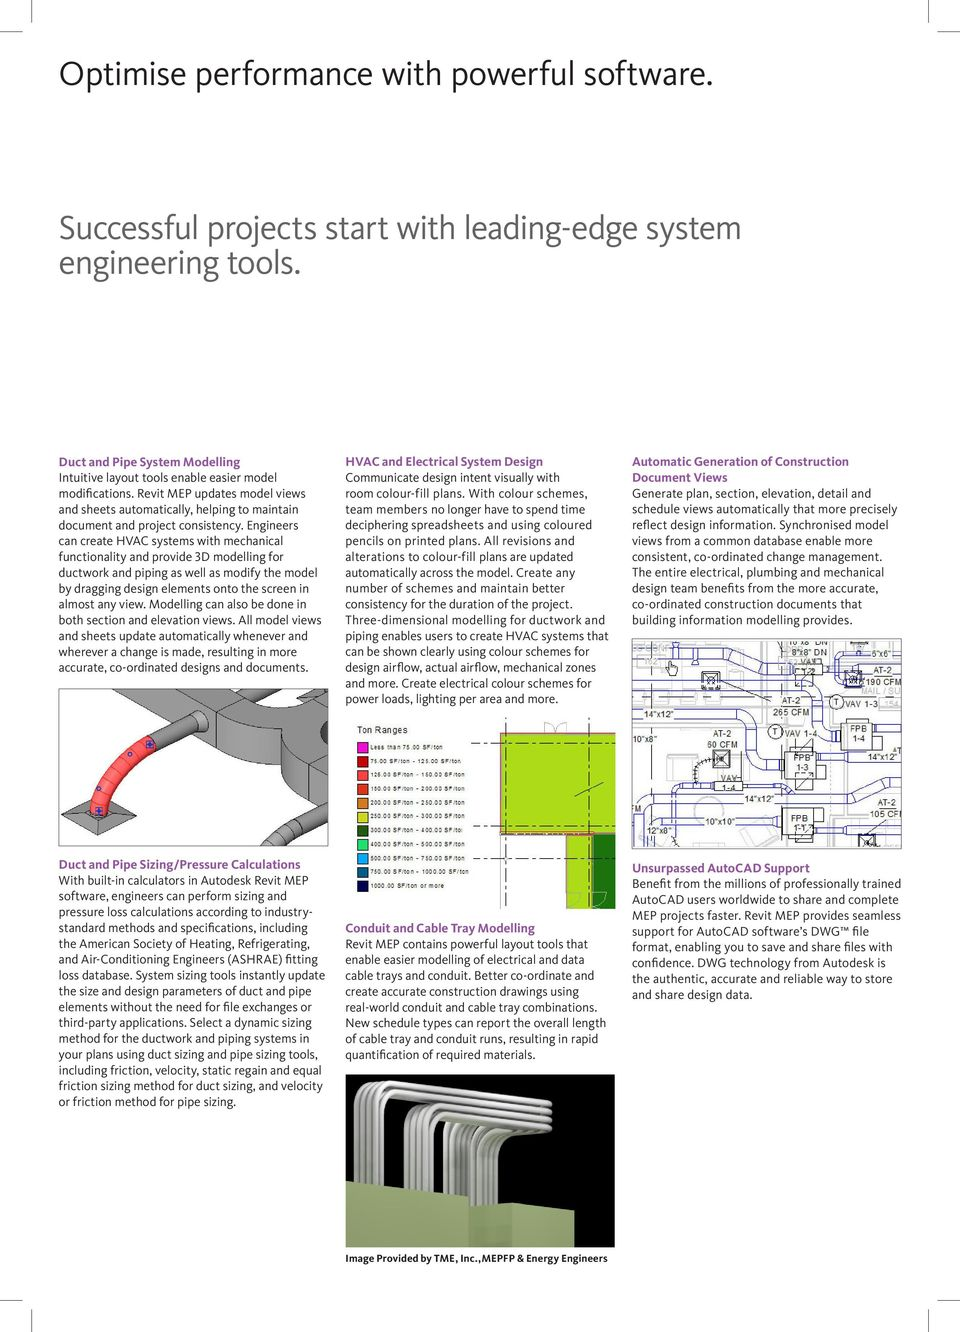 Engineers can create HVAC systems with mechanical functionality and provide 3D modelling for ductwork and piping as well as modify the model by dragging design elements onto the screen in almost any